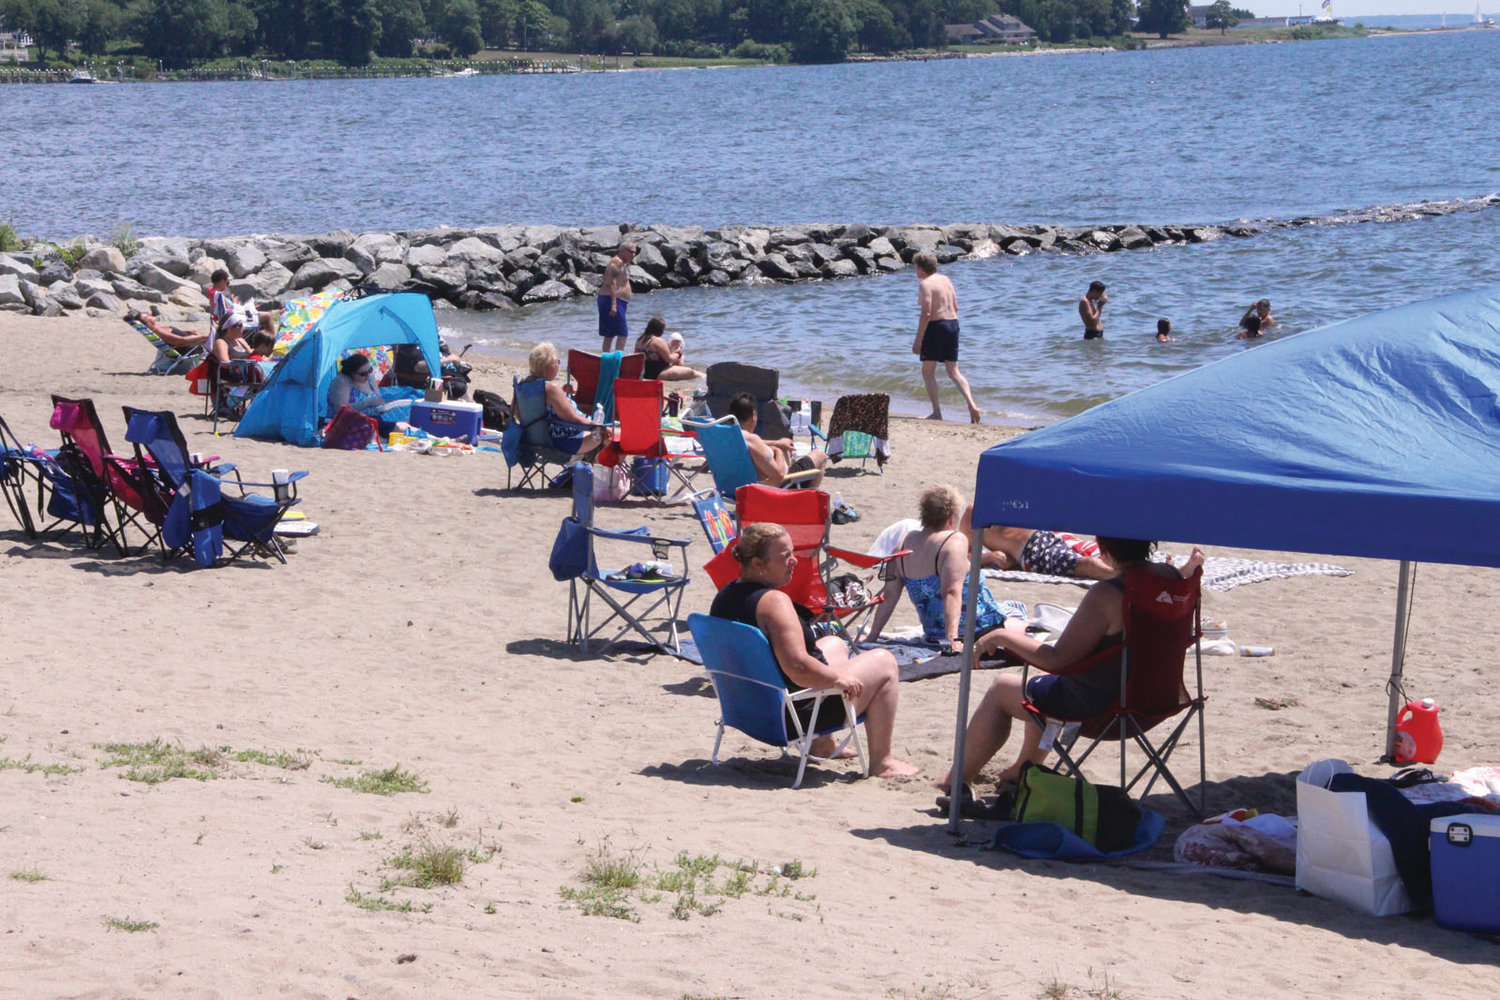 COOLING OFF AT THEIR OWN RISK: Greenwich Bay waters were too inviting during the recent heat wave for people to pay much attention to no lifeguard on duty signs at Oakland Beach.